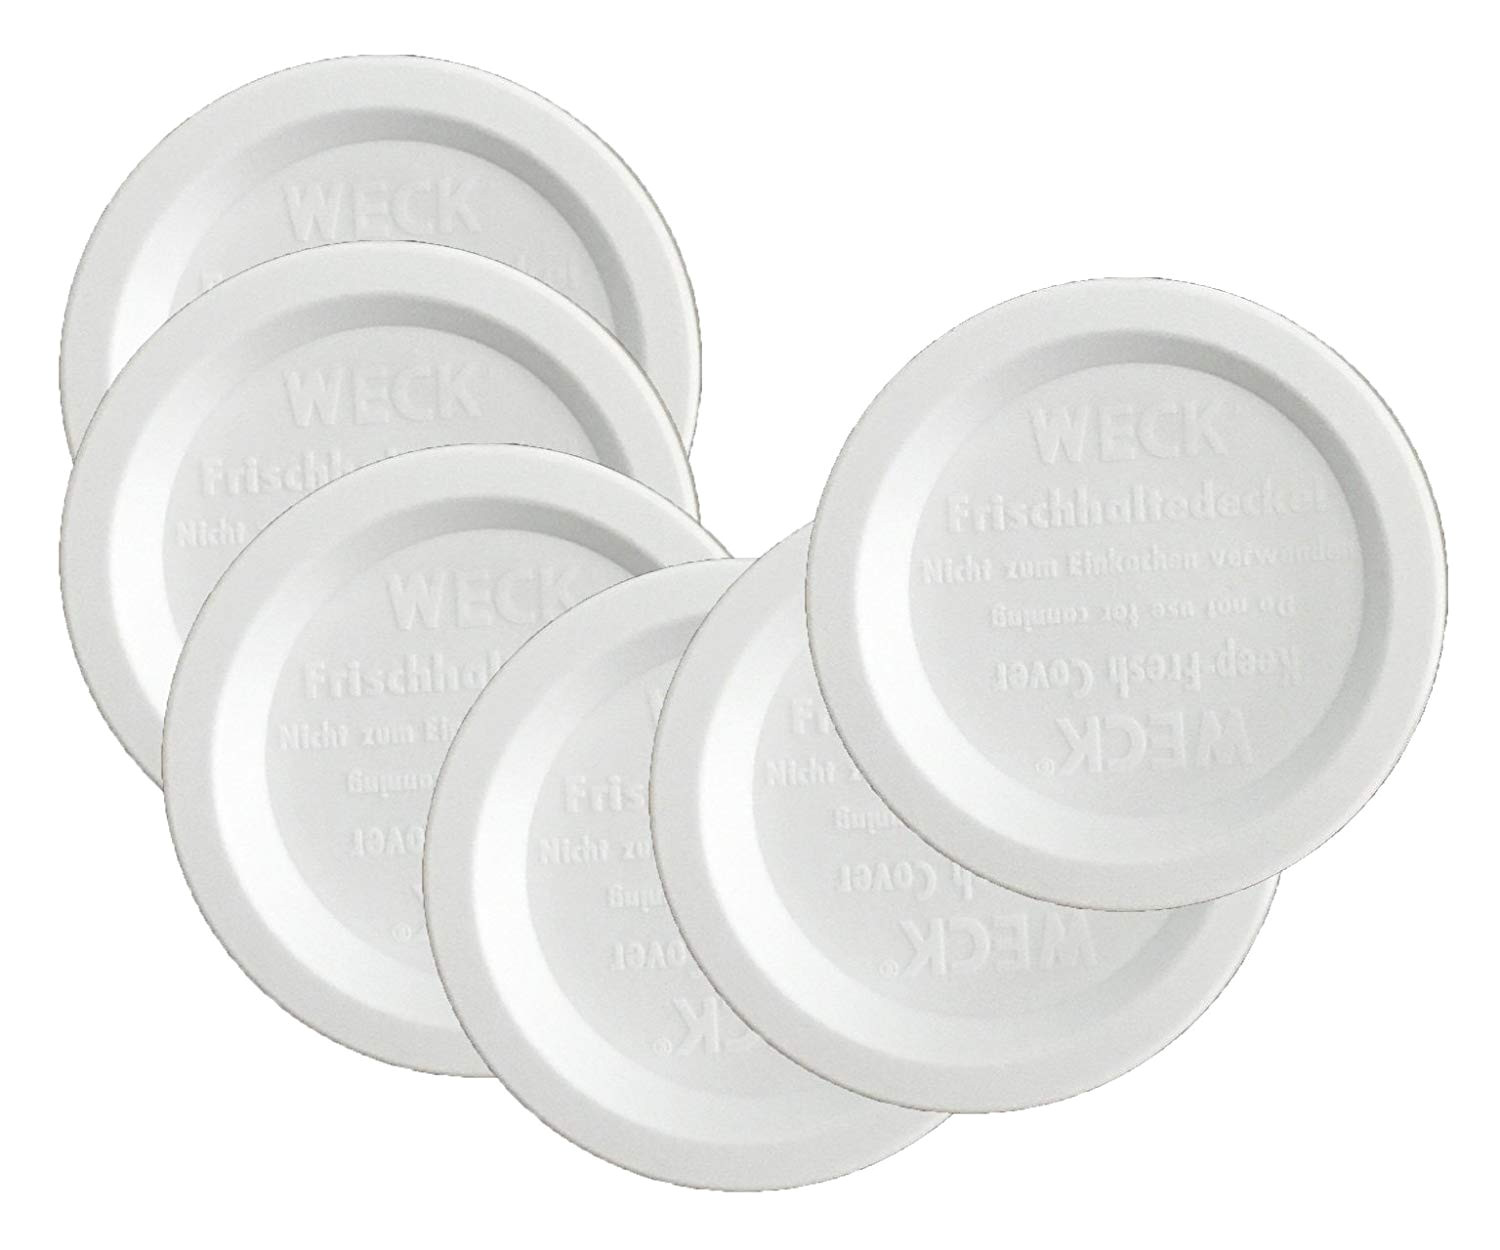 Wooden Lids for Weck Jars Amazon Com Weck Jar Keep Fresh Plastic Lids 6 Pack Small 60mm